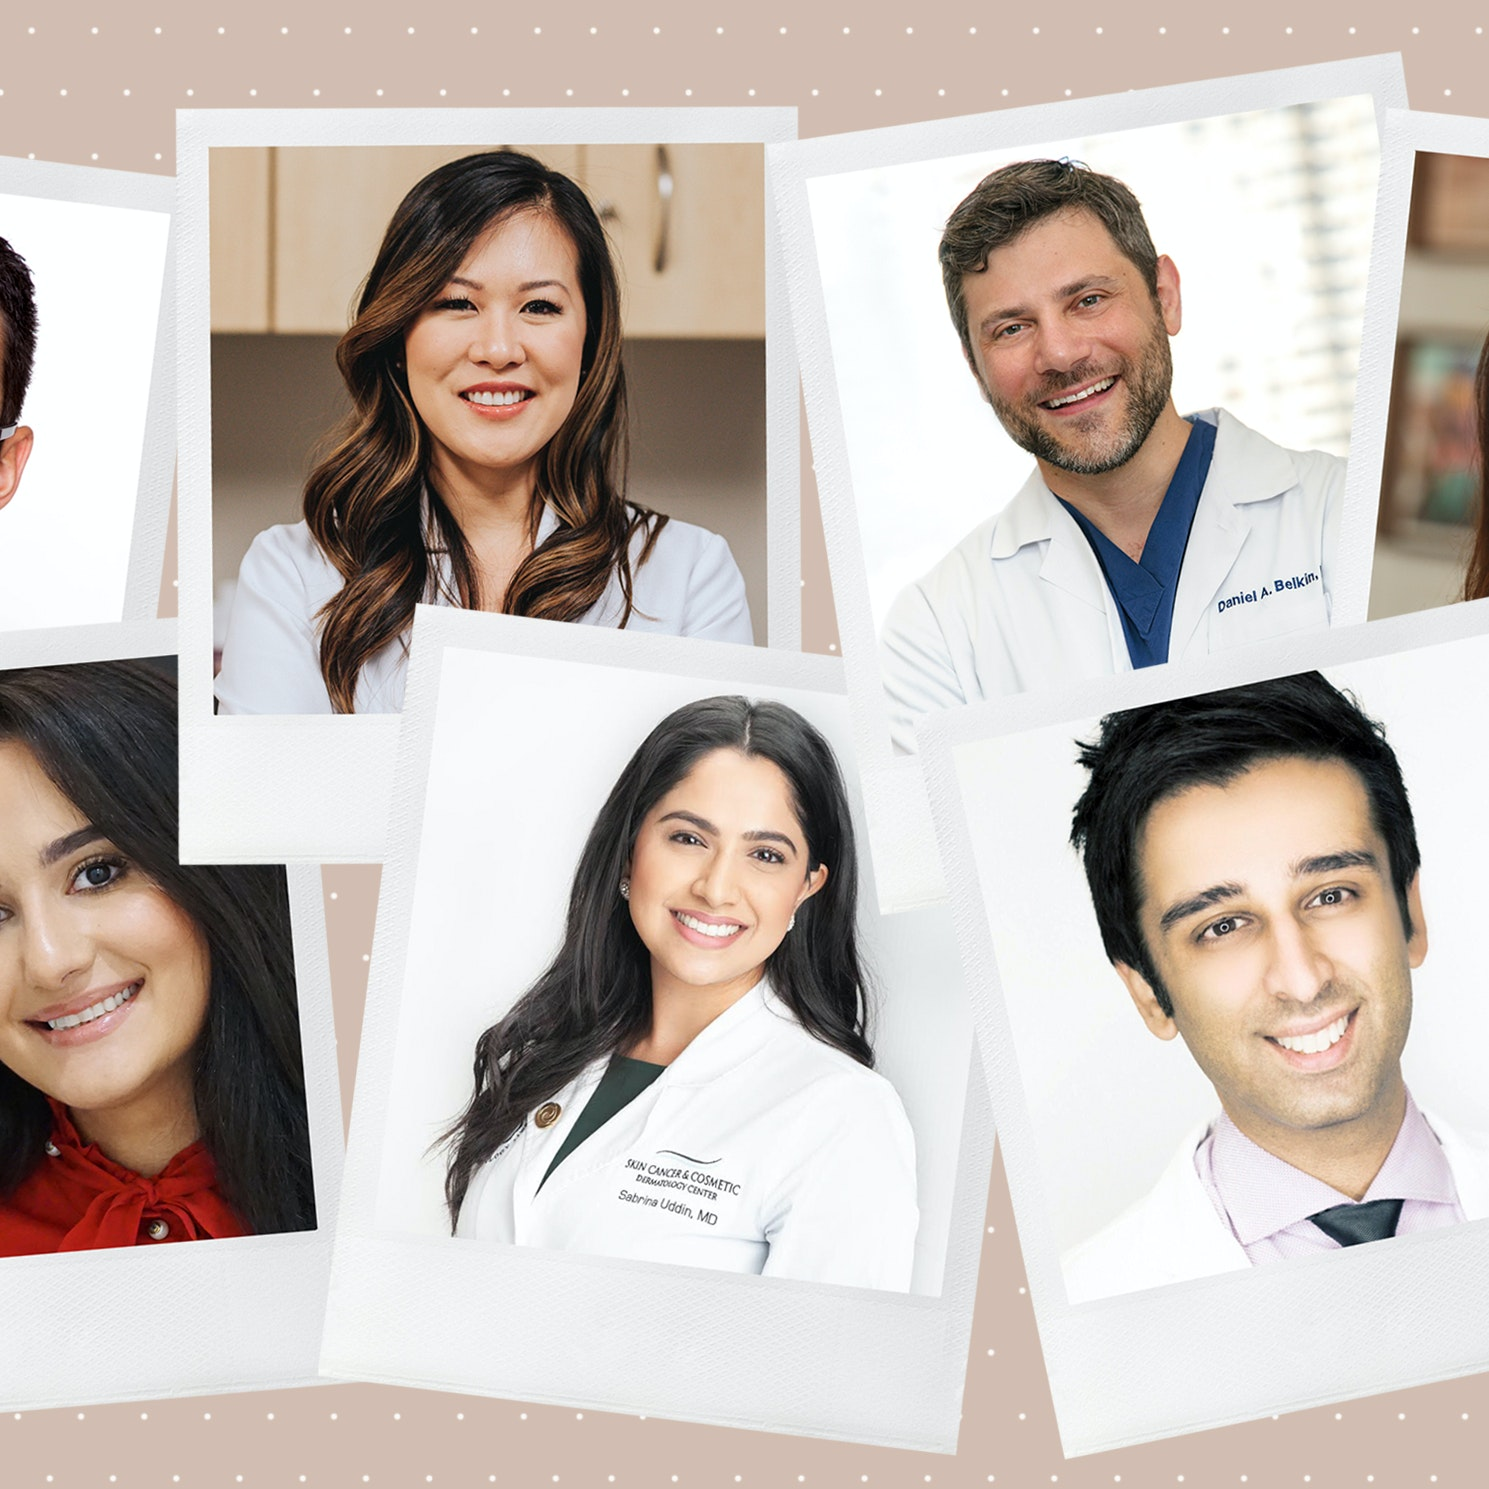 7 Millennial Dermatologists and Plastic Surgeons Share Their Skincare and Injectables Routines